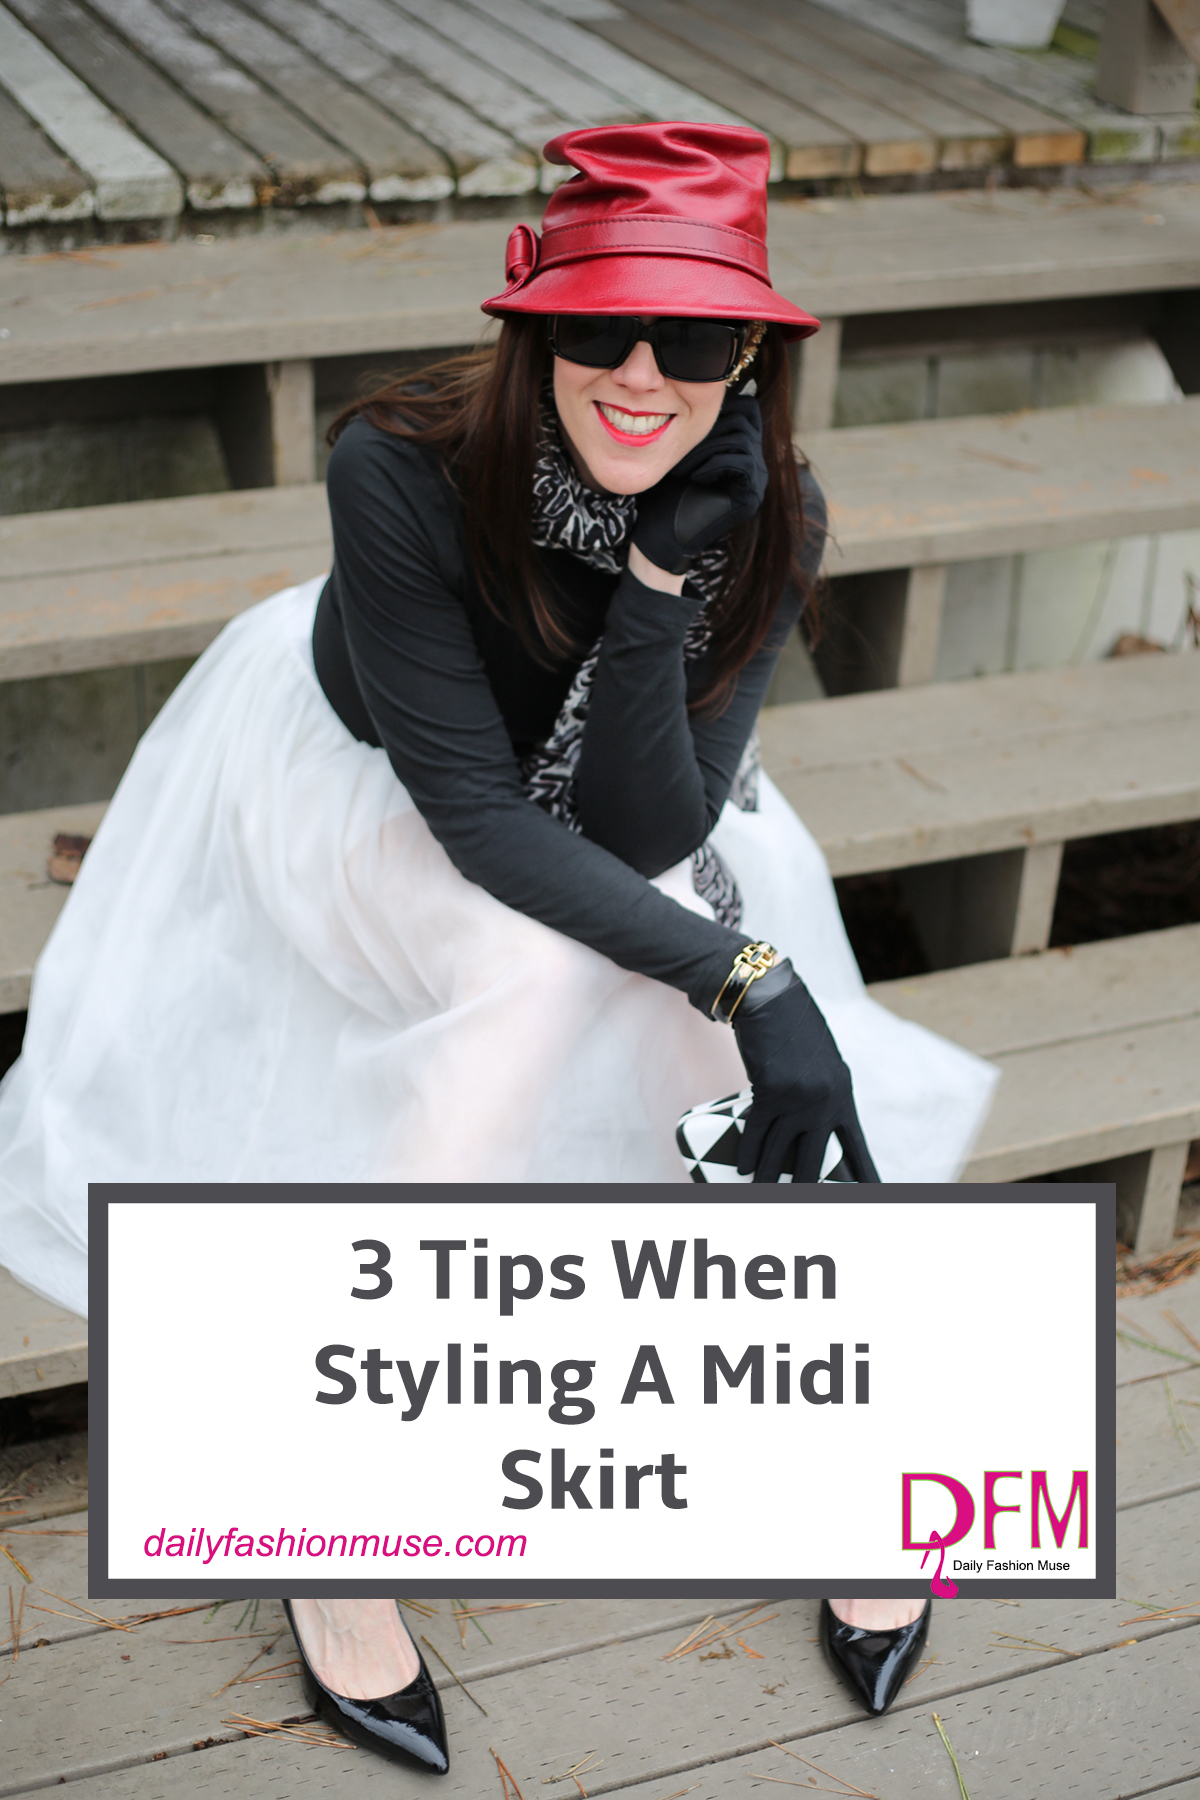 Styling a midi skirt can be tricky. It can very quickly start moving into a matronly look. Here are 3 tips to help you style a midi skirt. Click to read.